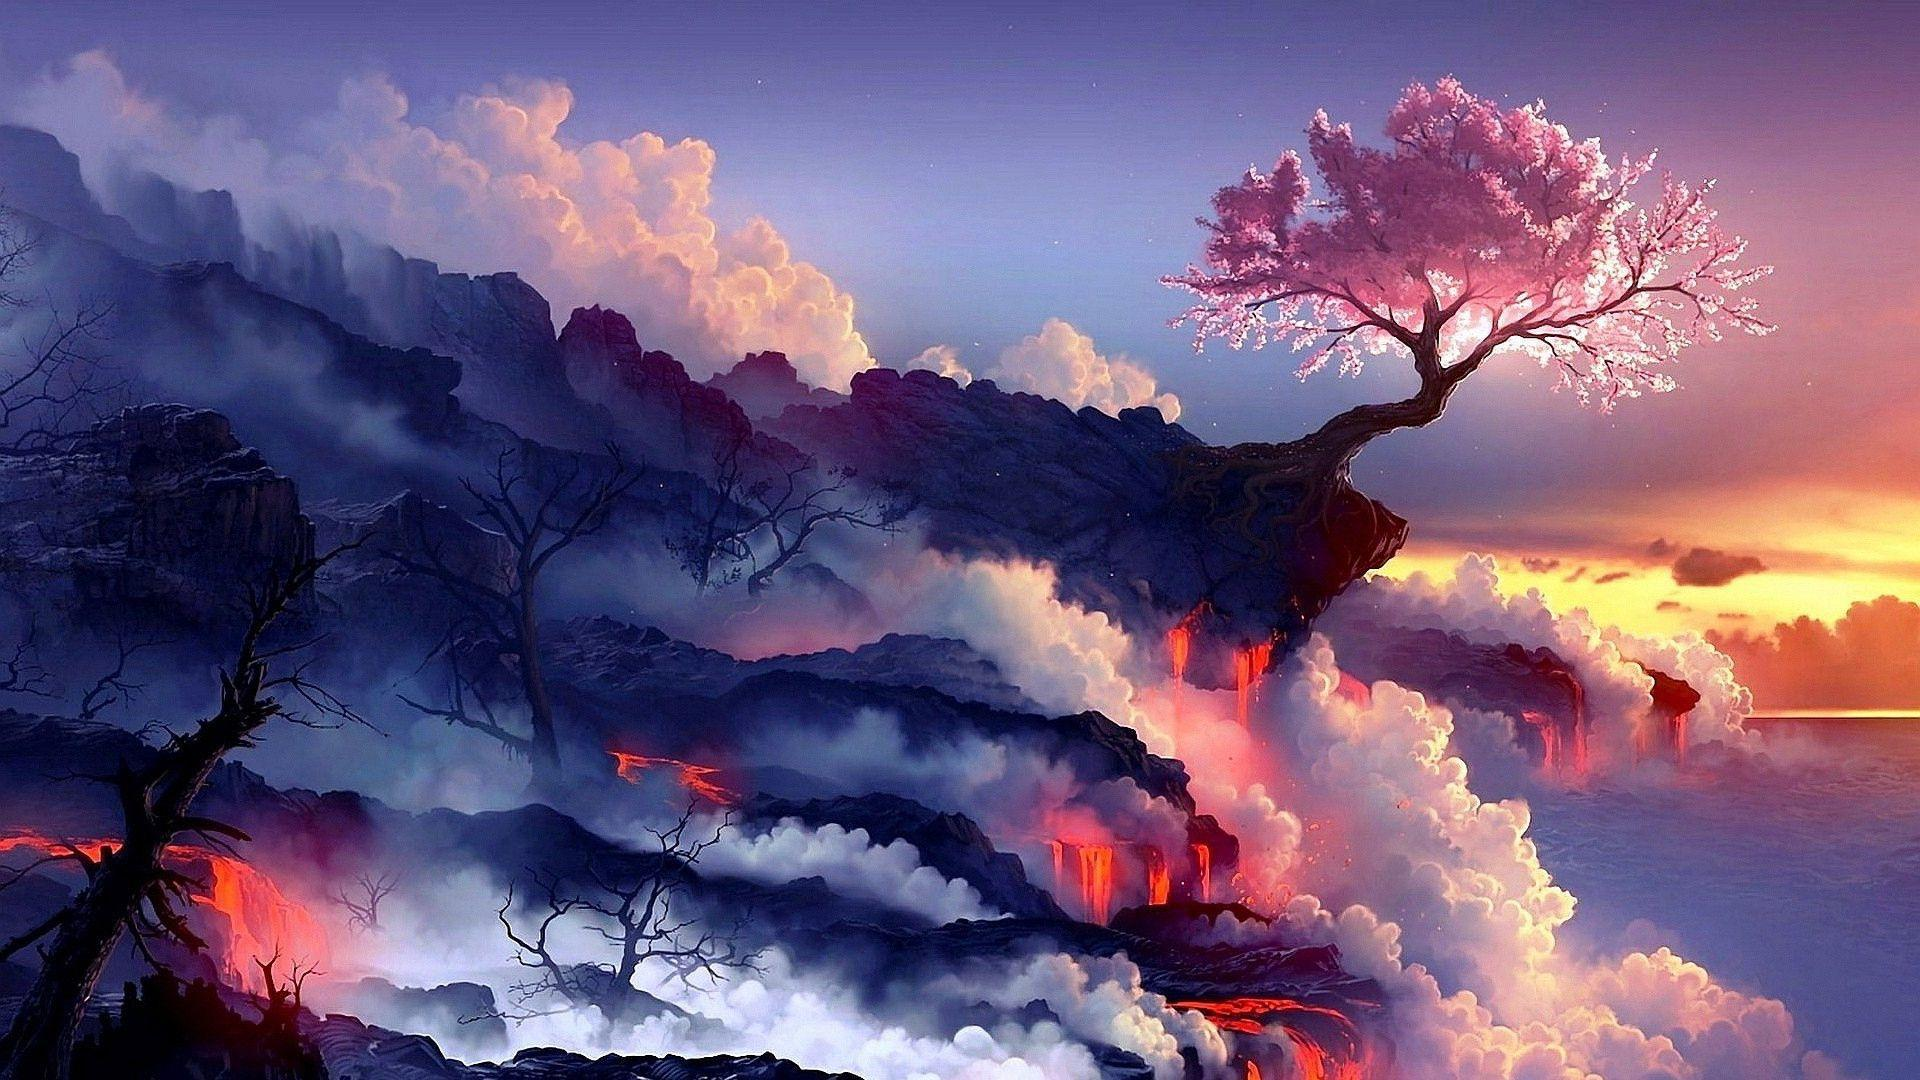 volcano eruption wallpaper hd - photo #22